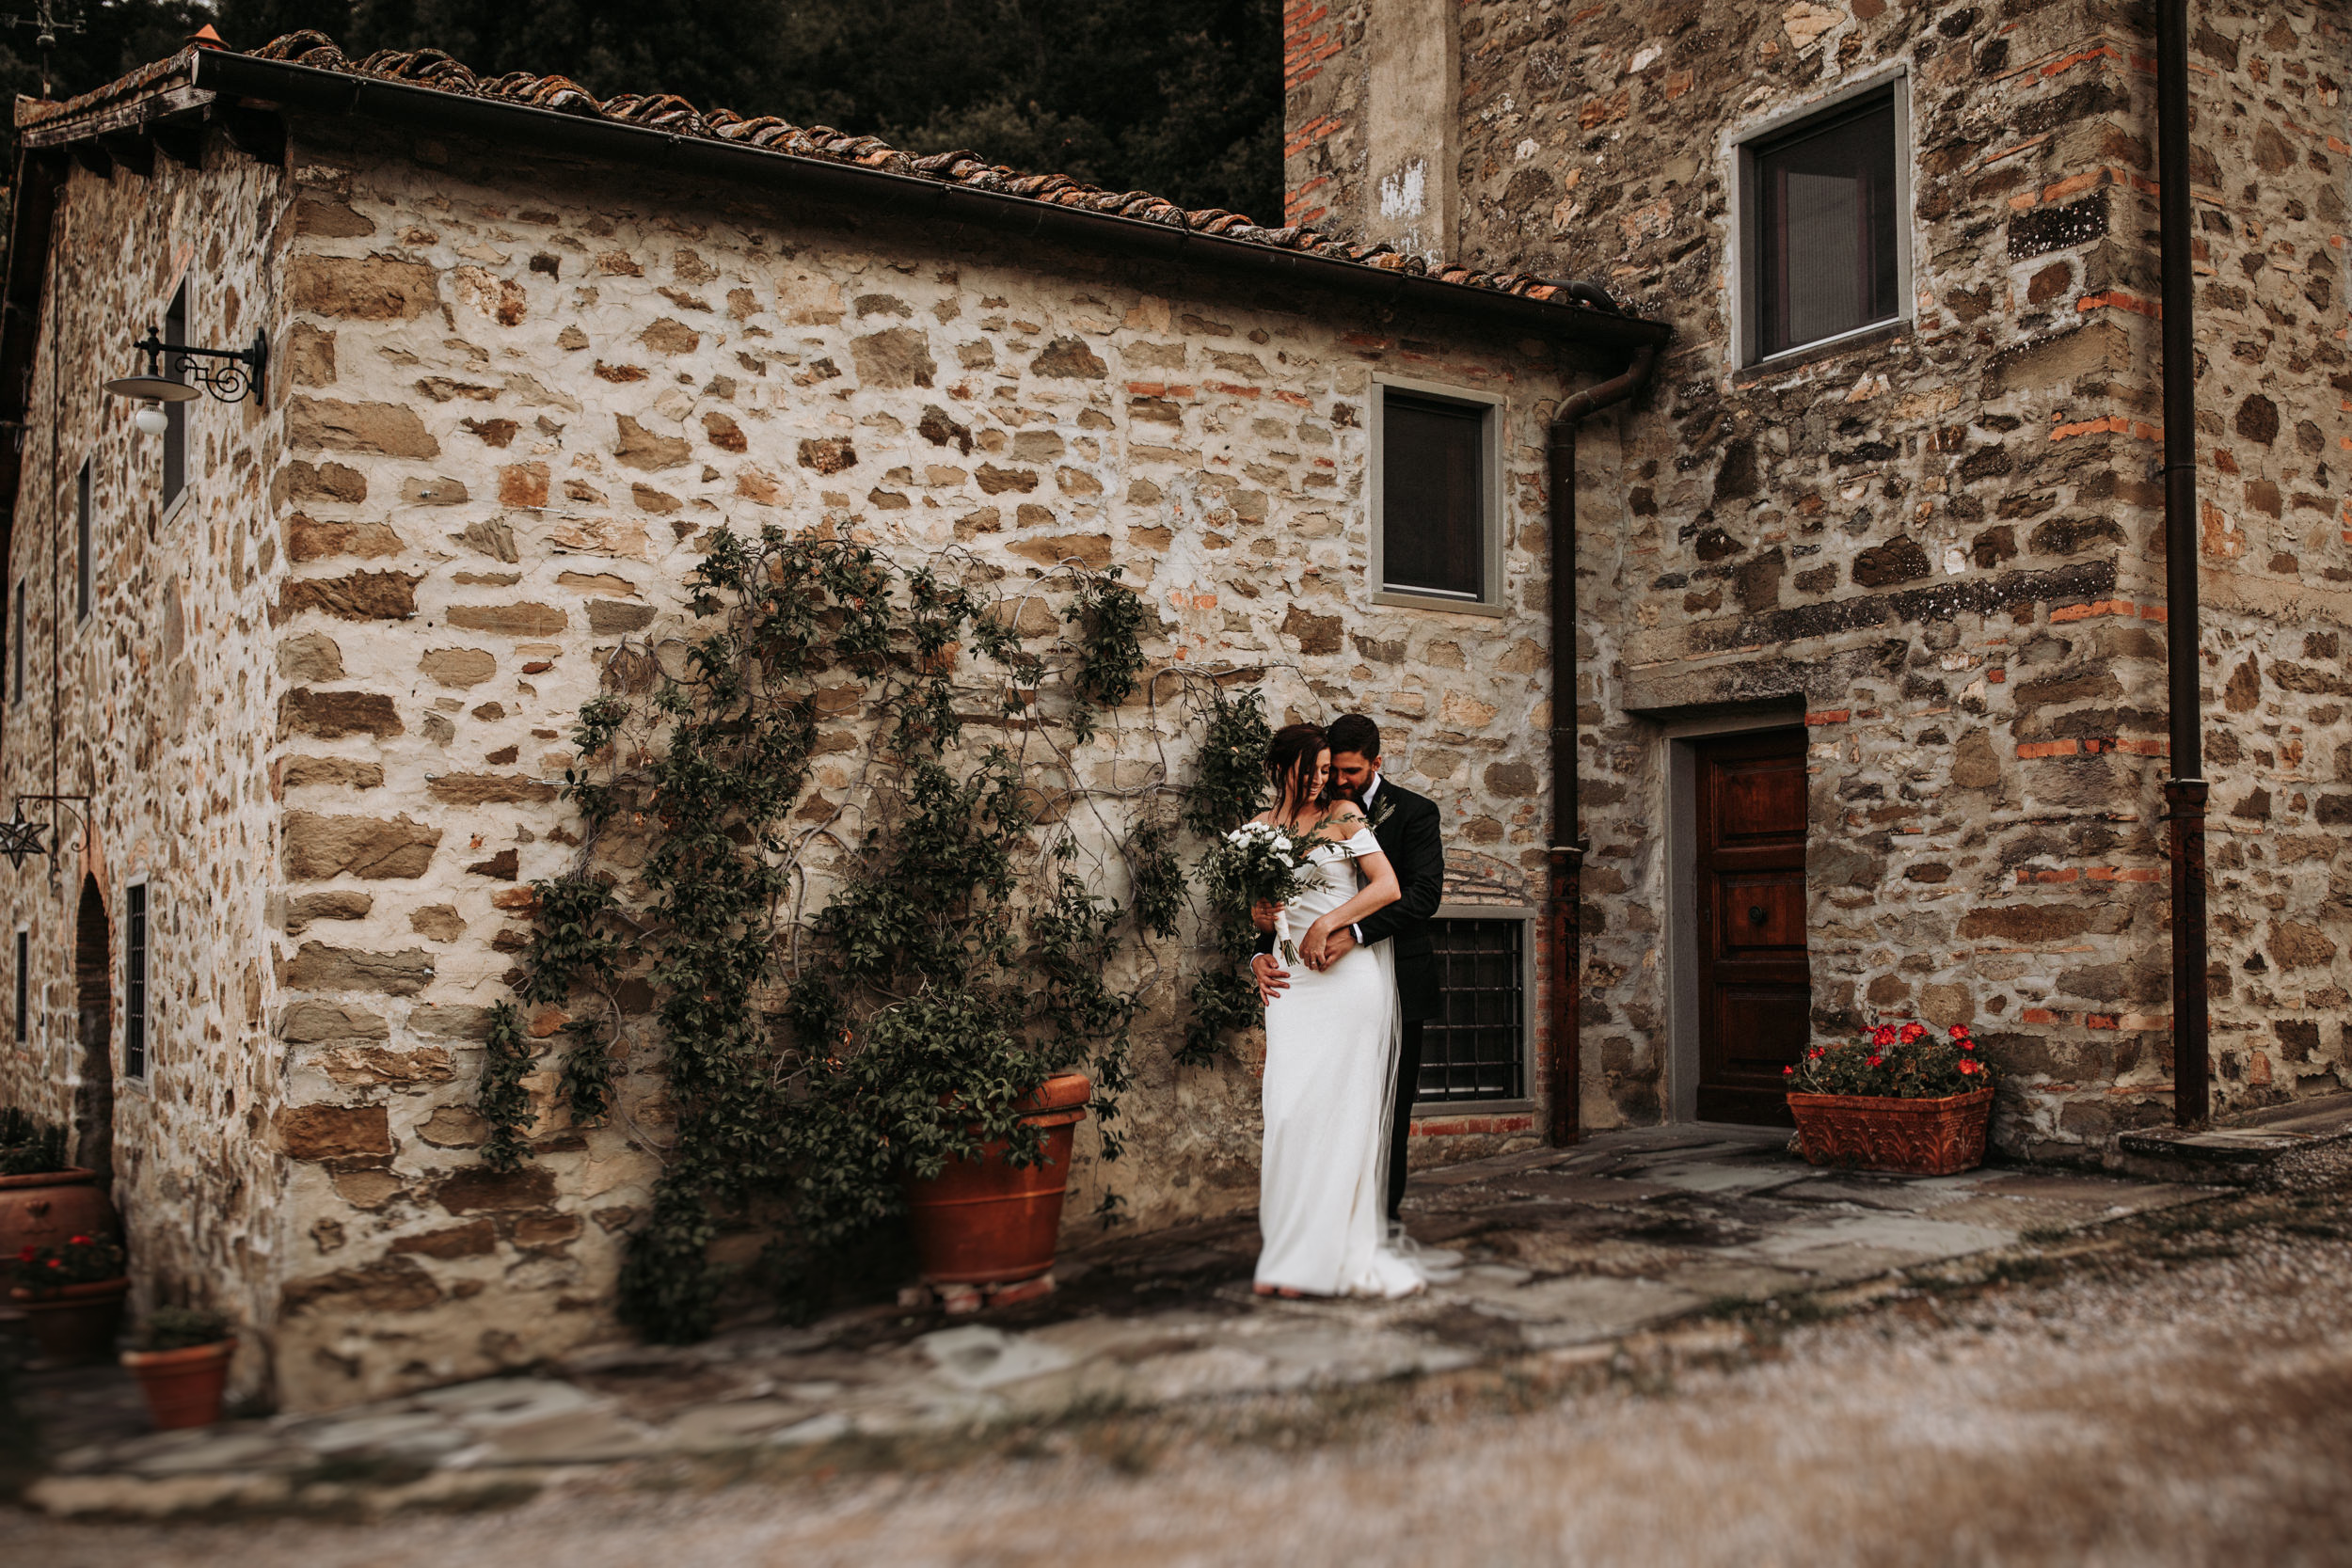 dm_photography_KW_Tuscanyweddingday_318